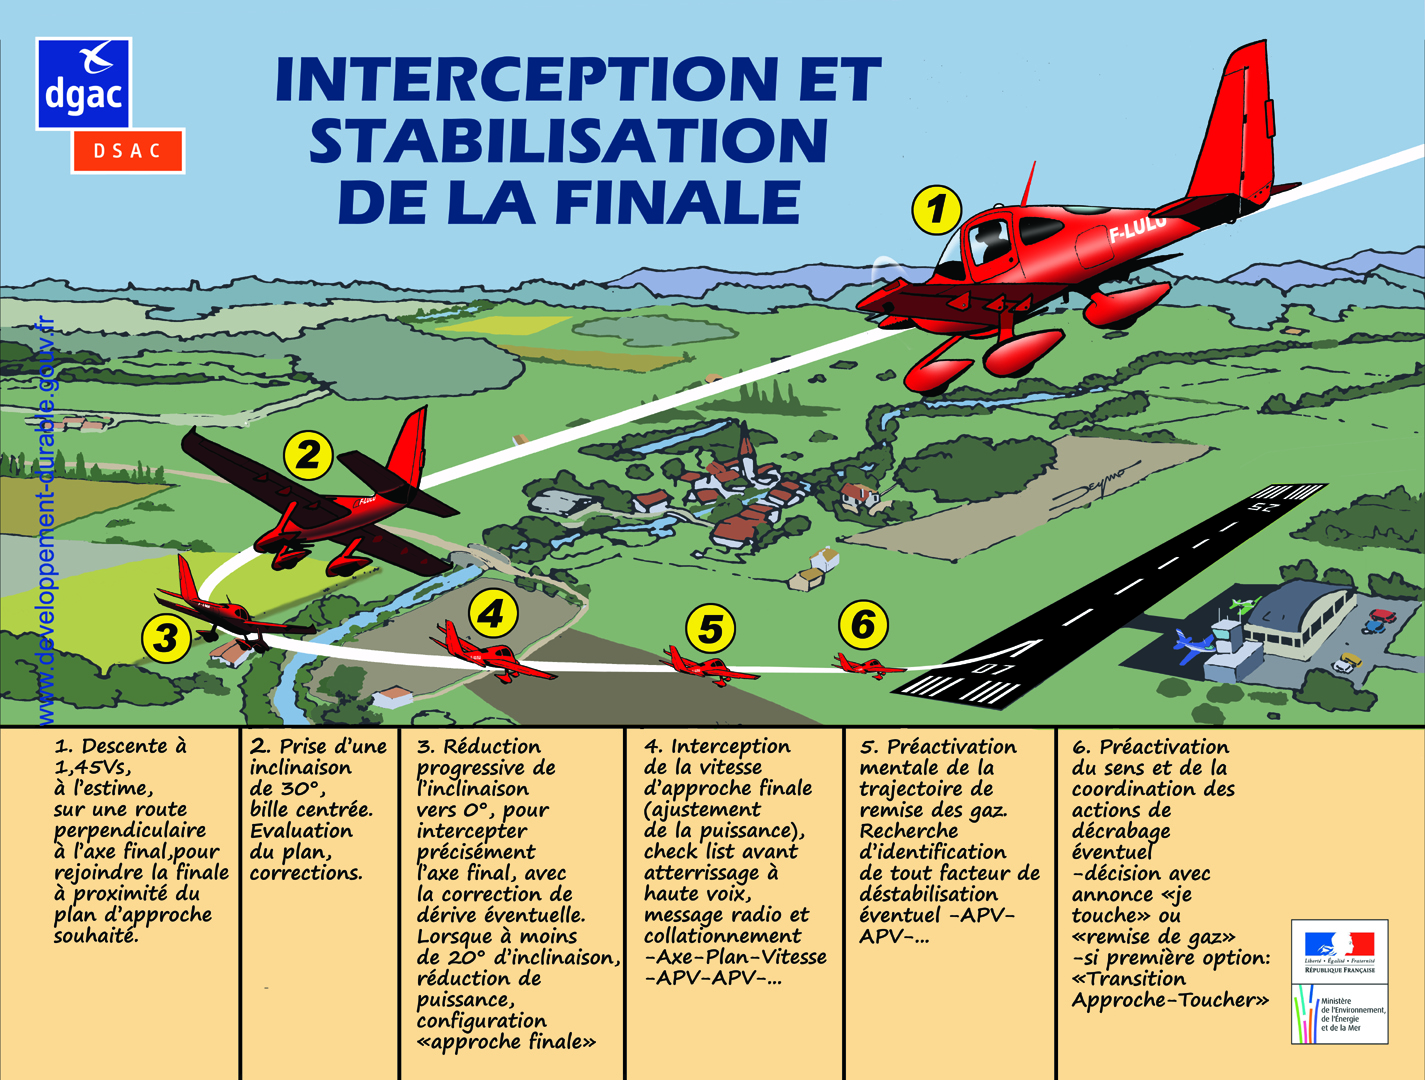 Interception et stabilisation de la finale